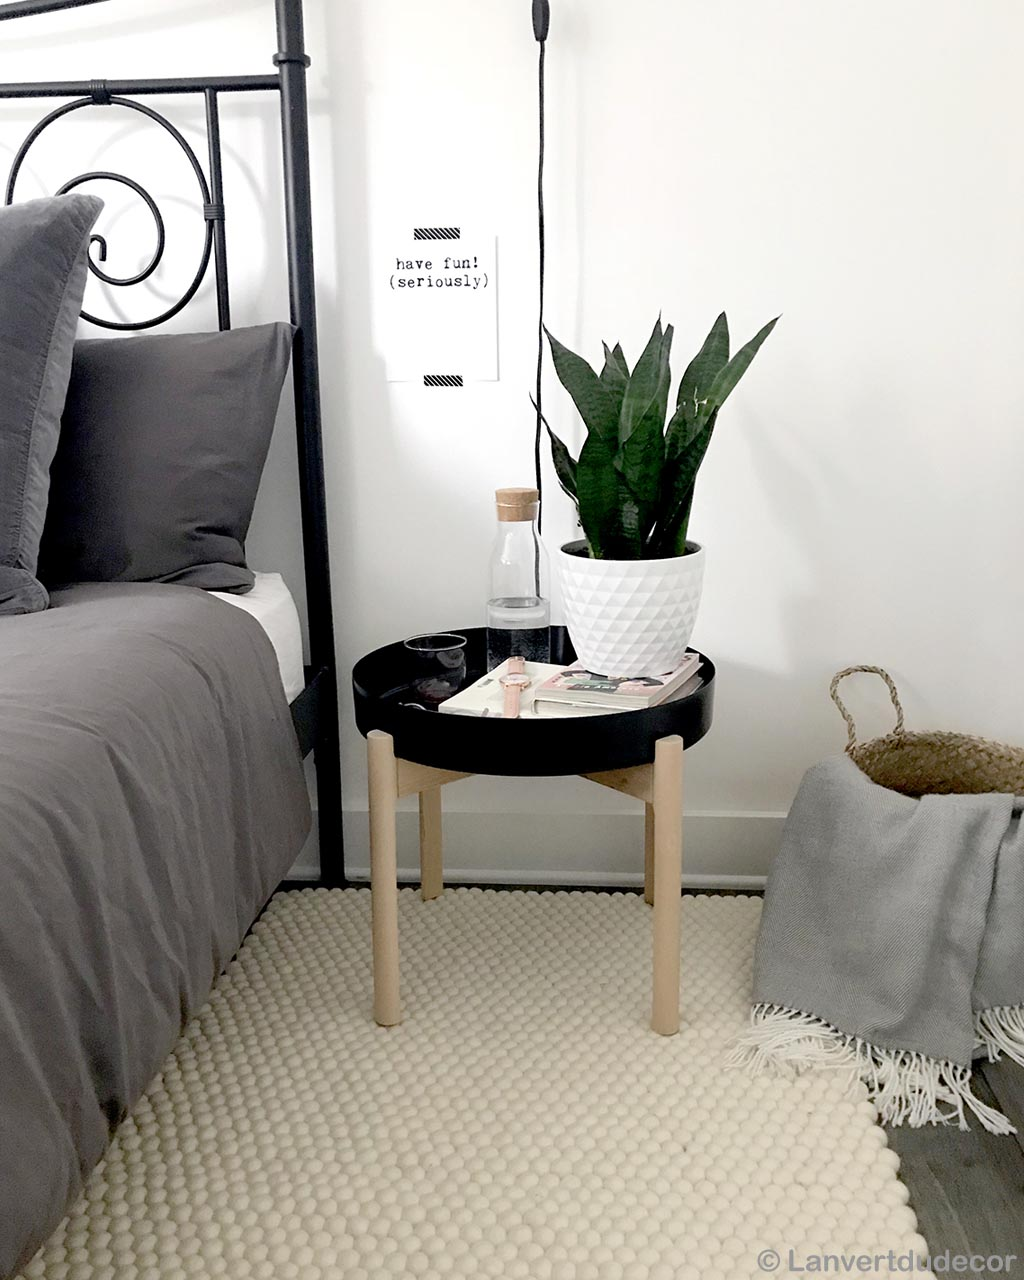 vase table and bed designer room rugs